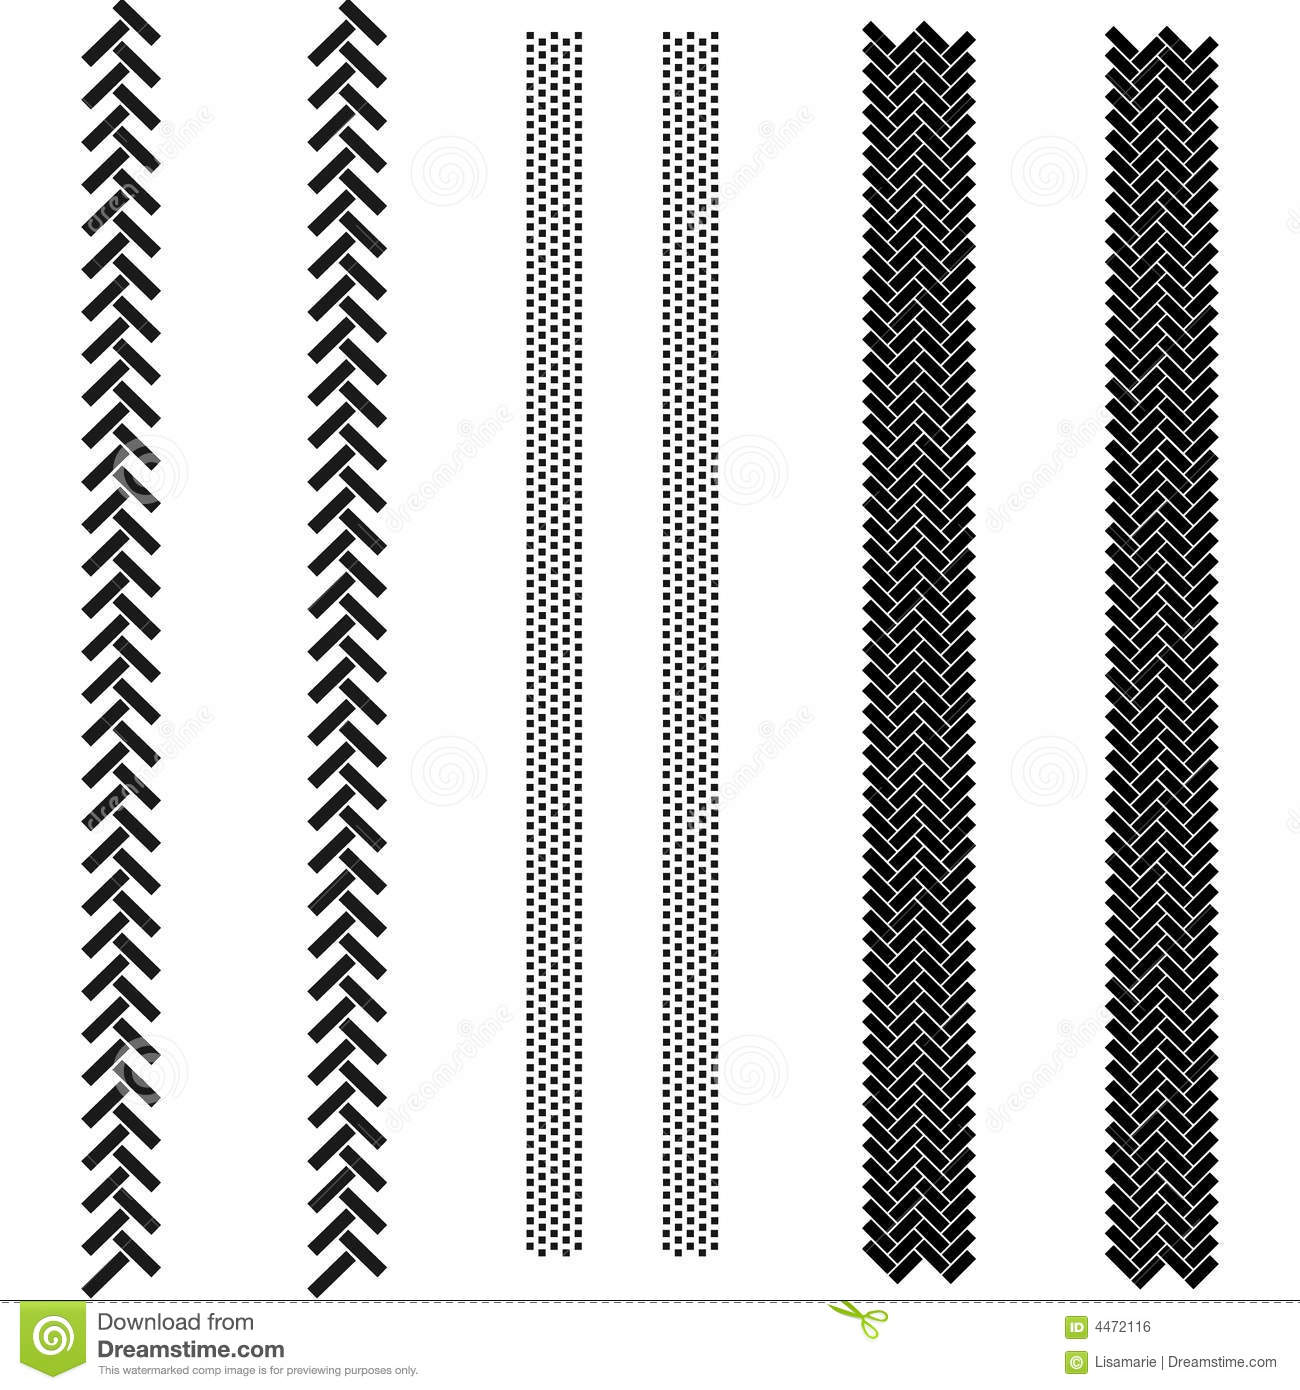 Tractor Treads Stock Illustrations 27 Tractor Treads Stock Illustrations Vectors Clipart Dreamstime